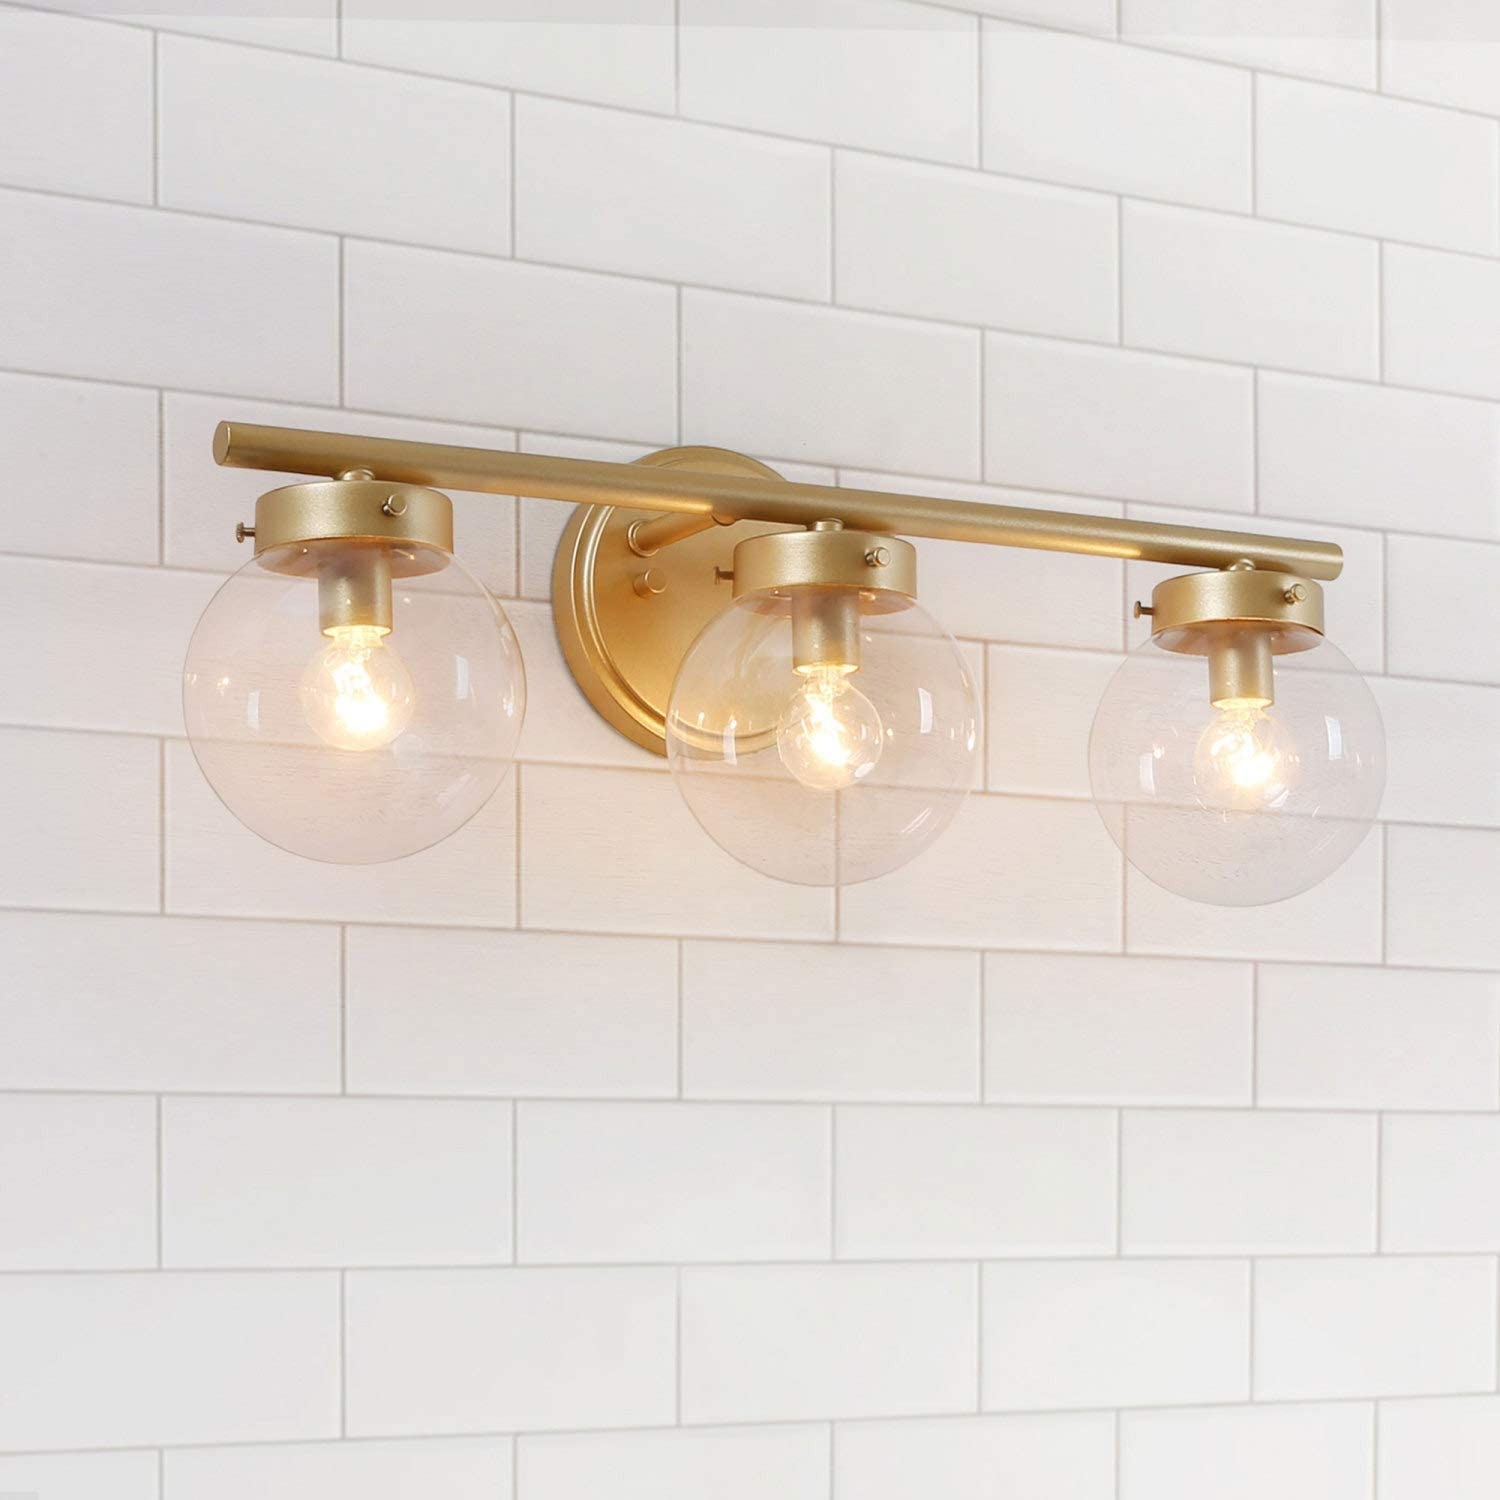 Laluz Bathroom Light Fixtures Gold Vanity Light Fixture With Clear Glass Shades L19 5 W6 H7 5 Amazon Com